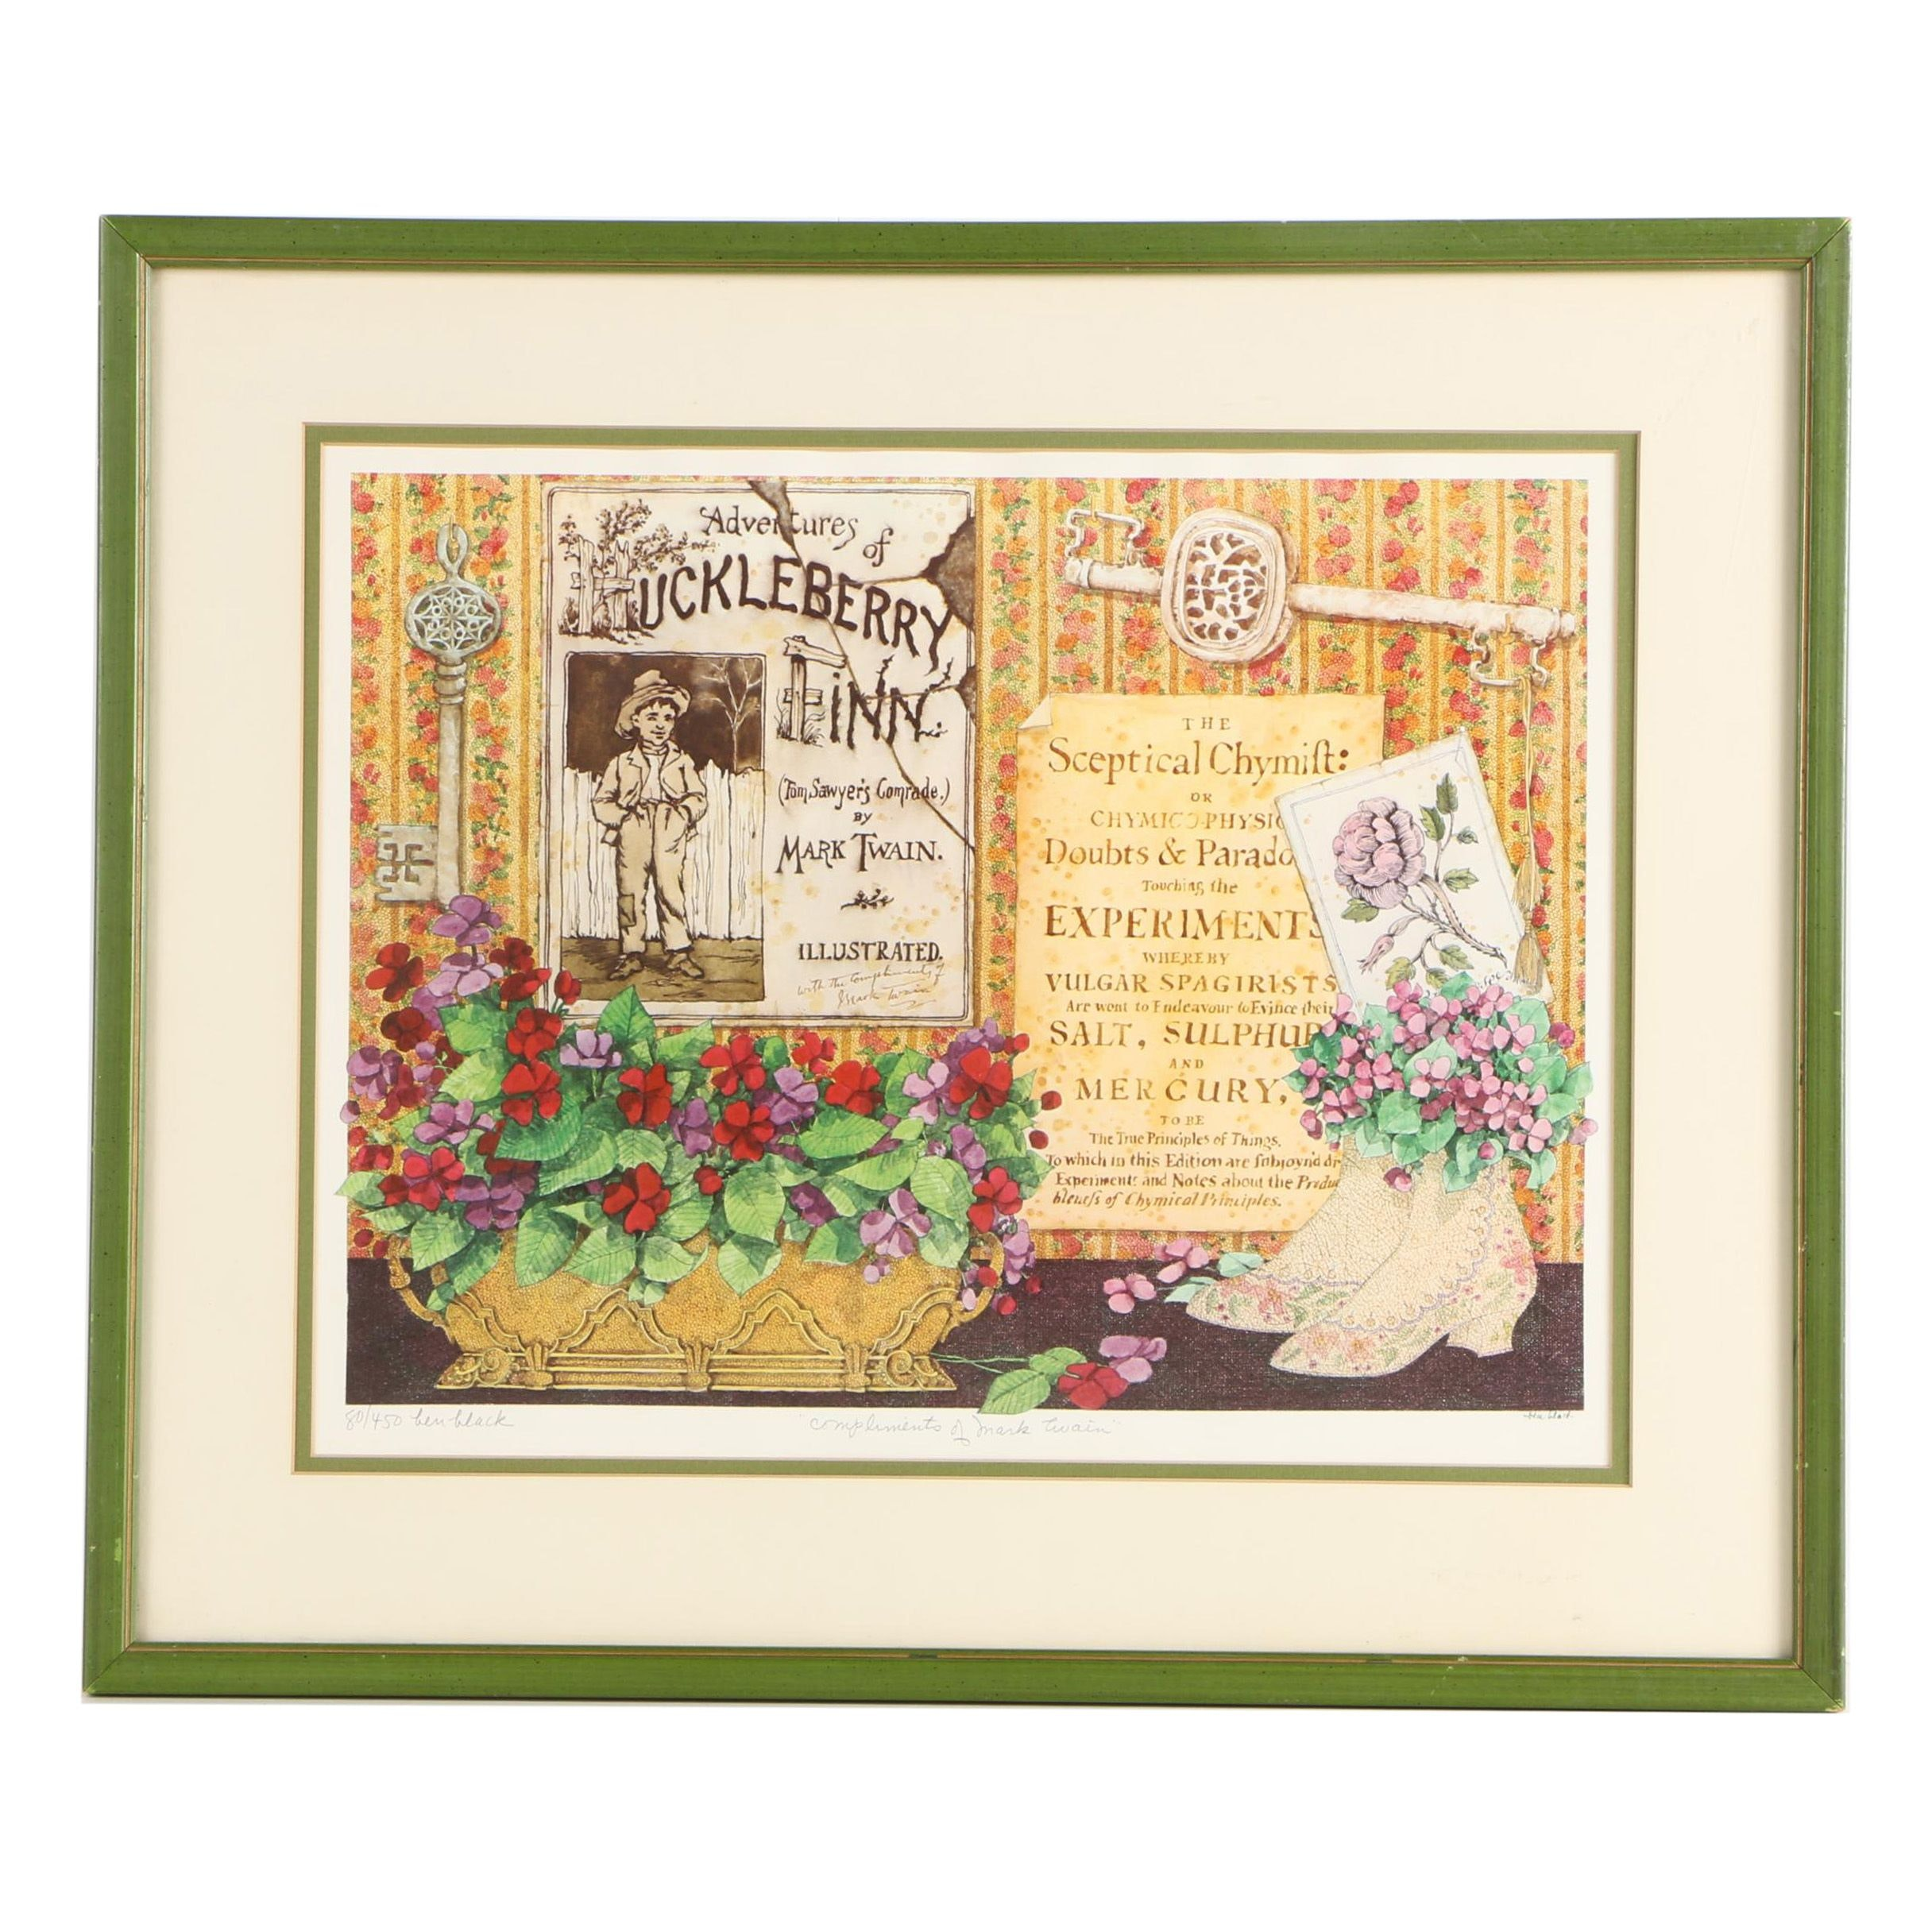 """Limited Edition Offset Lithograph after Ben Black's """"Compliments of Mark Twain"""""""